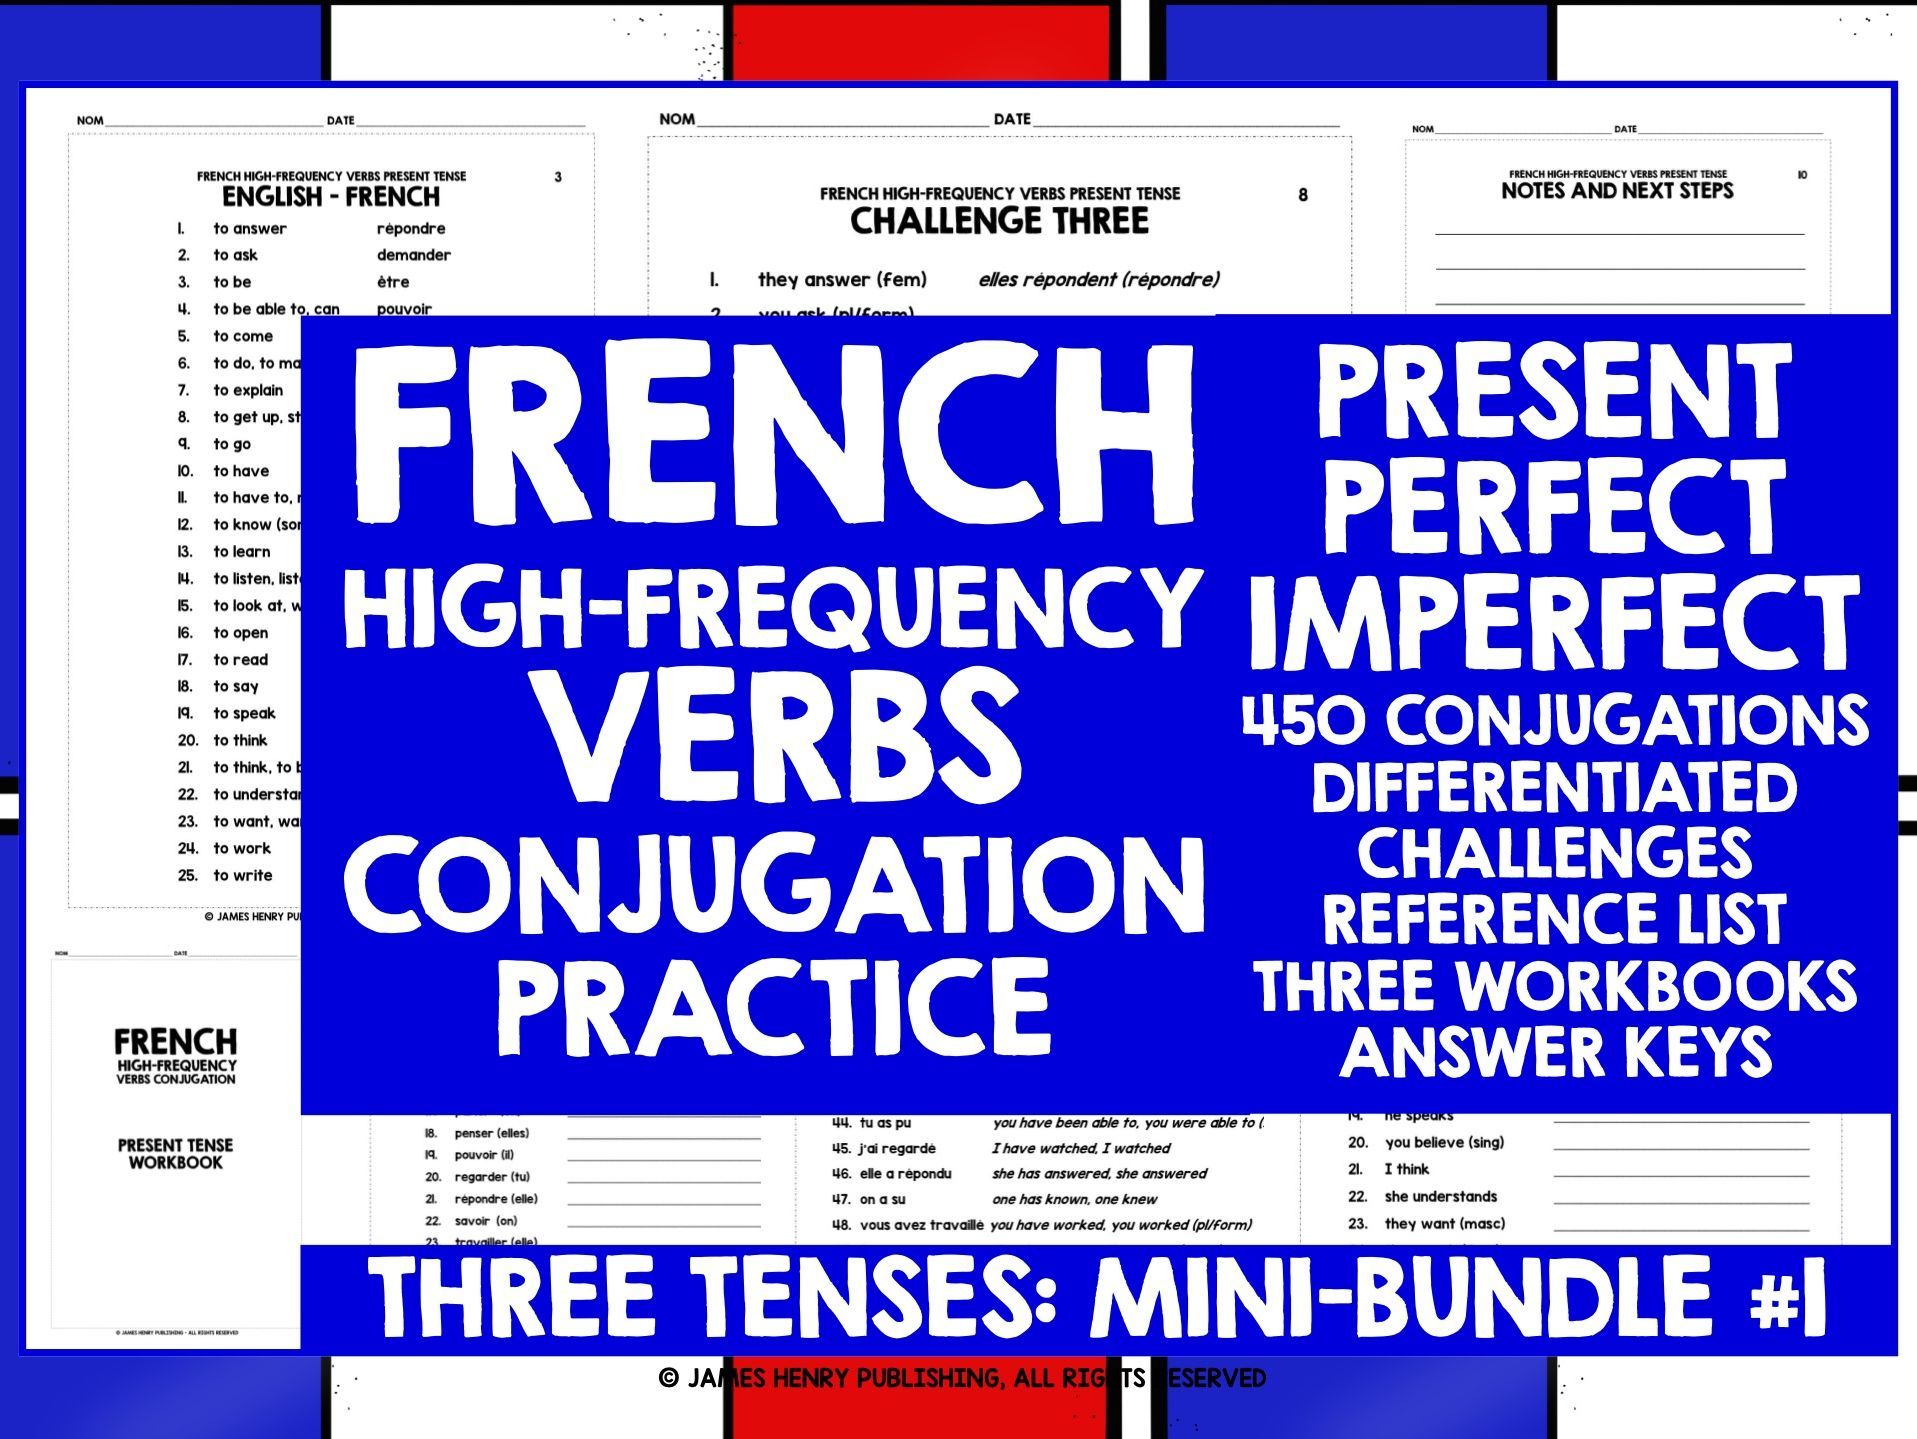 FRENCH HIGH-FREQUENCY VERBS CONJUGATION PRACTICE MINI-BUNDLE #1